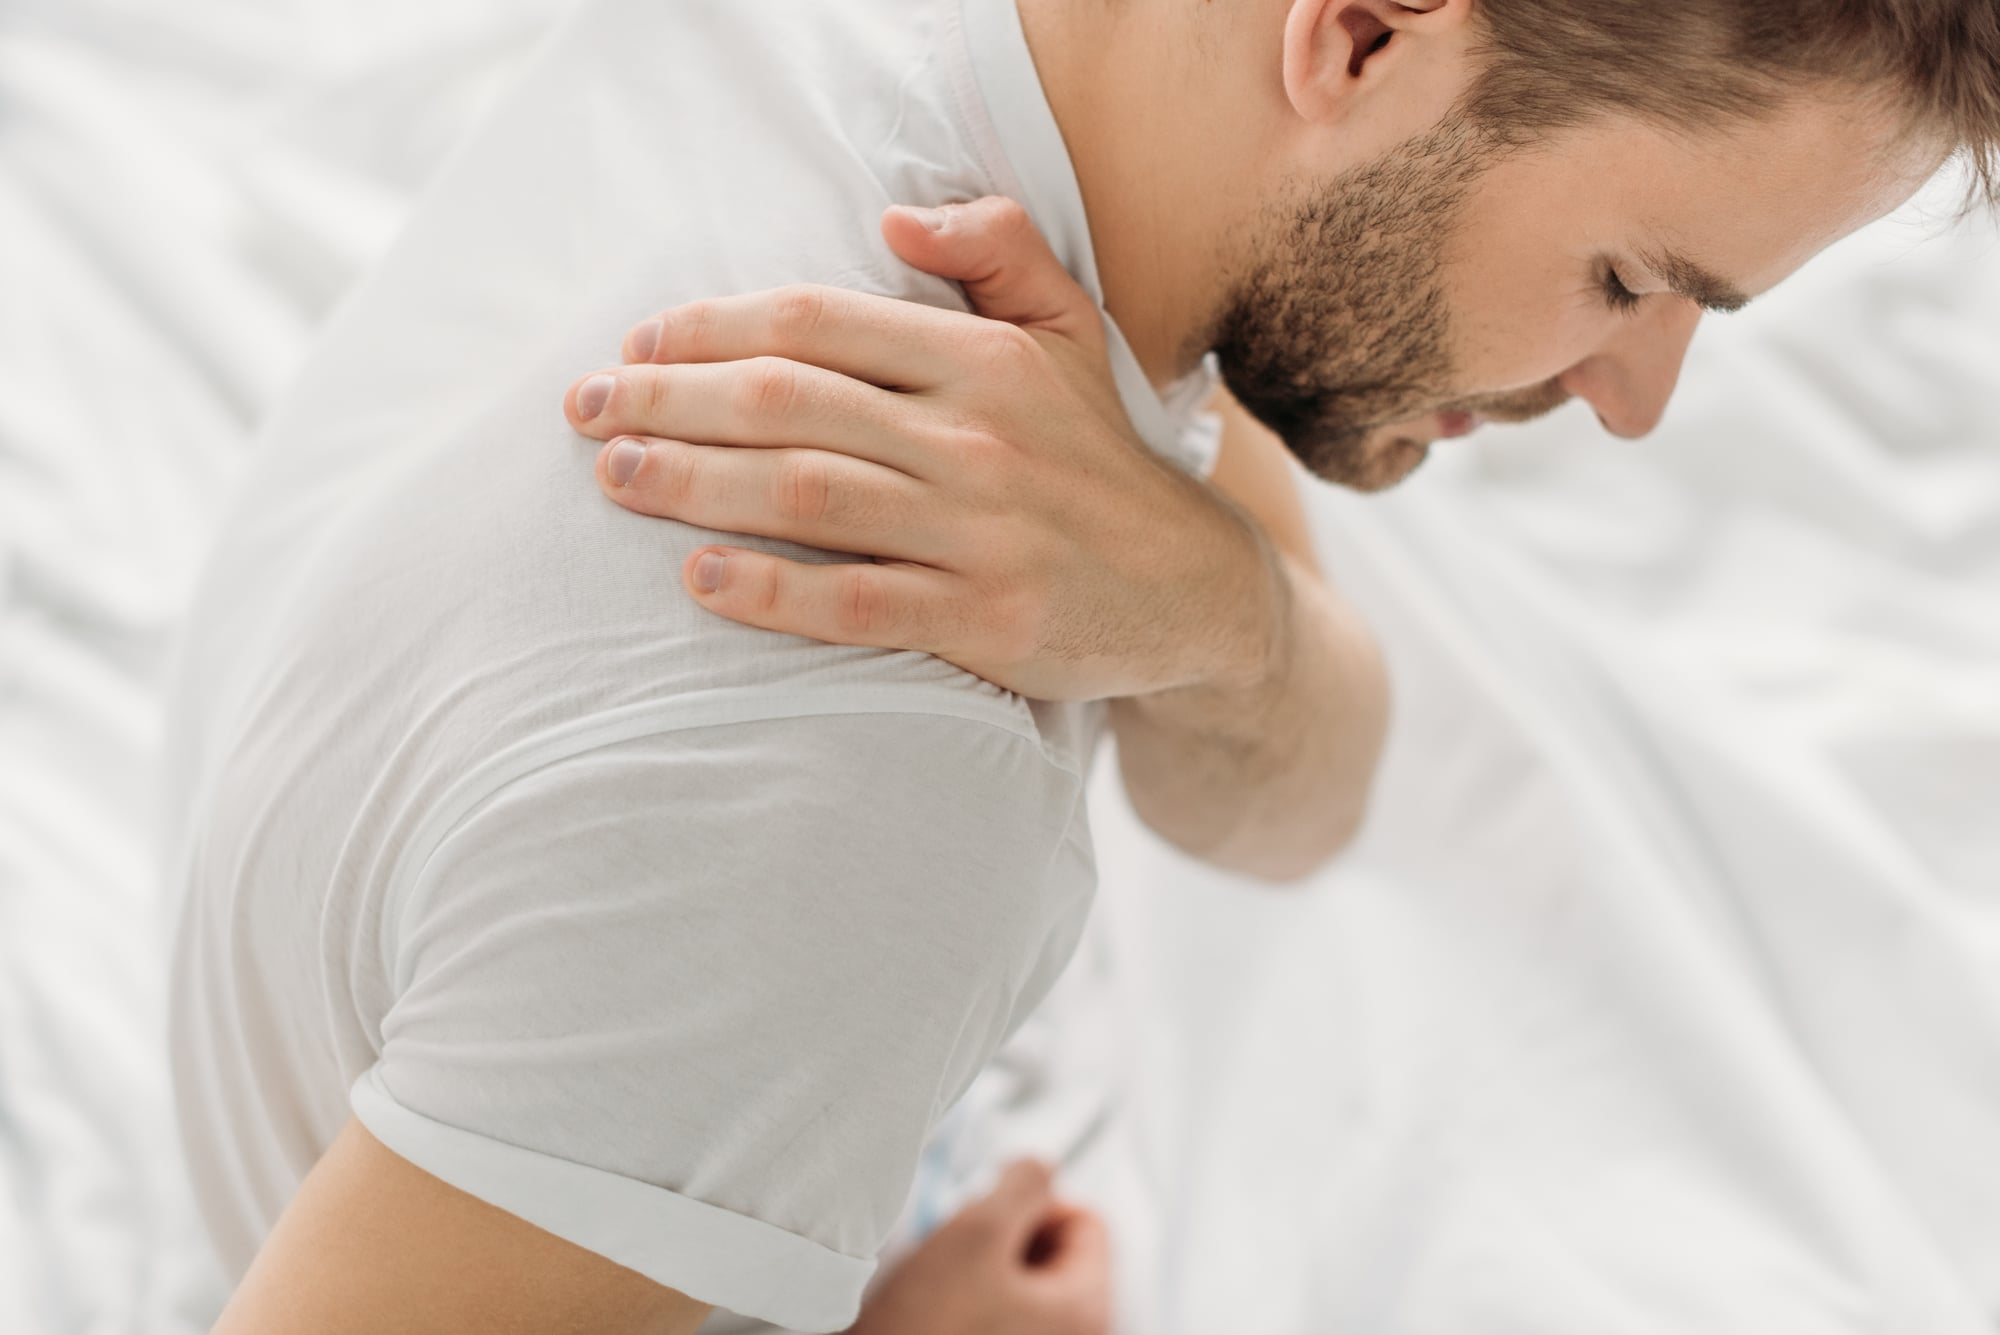 man suffering from soreness and stiffness